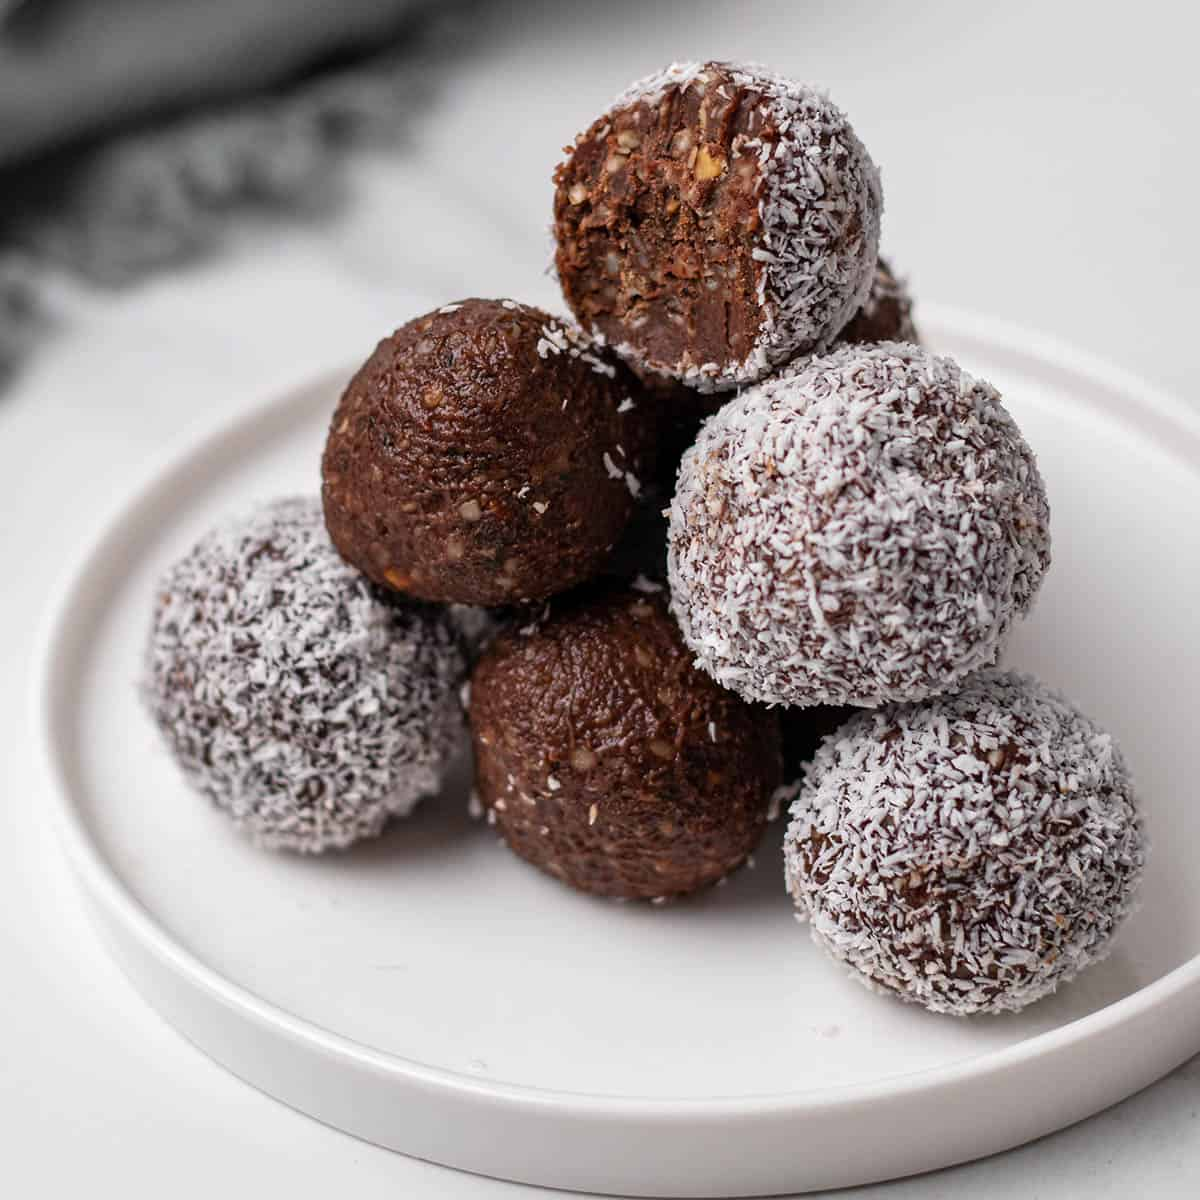 Chocolate Keto Fat Bombs Peanut Butter Coconut Oil Diabetes Strong Ingredients, instructions and nutritional facts can be found here. chocolate keto fat bombs